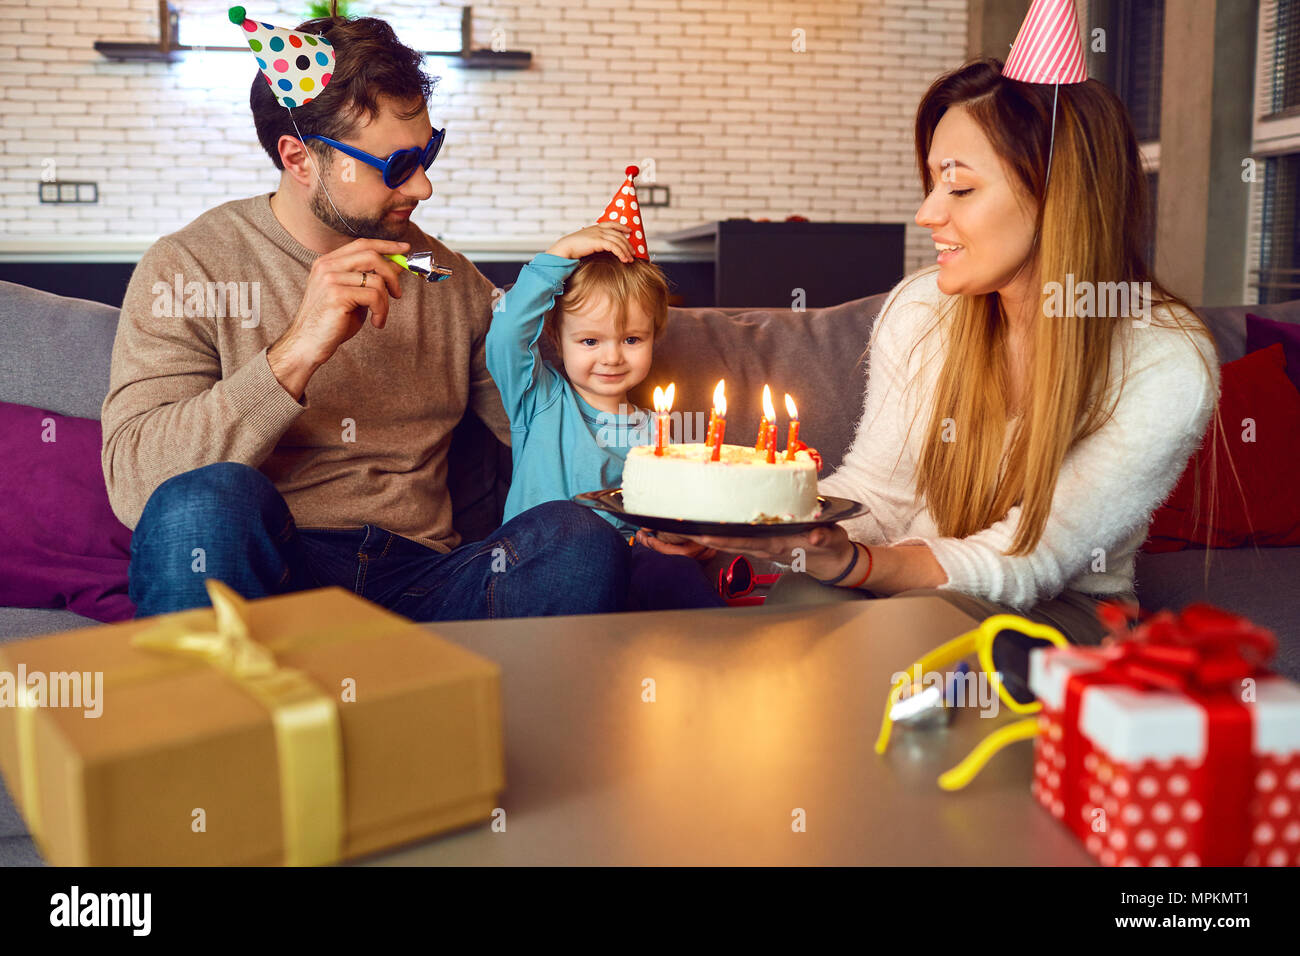 Parents with birthday cake congratulate their child. - Stock Image